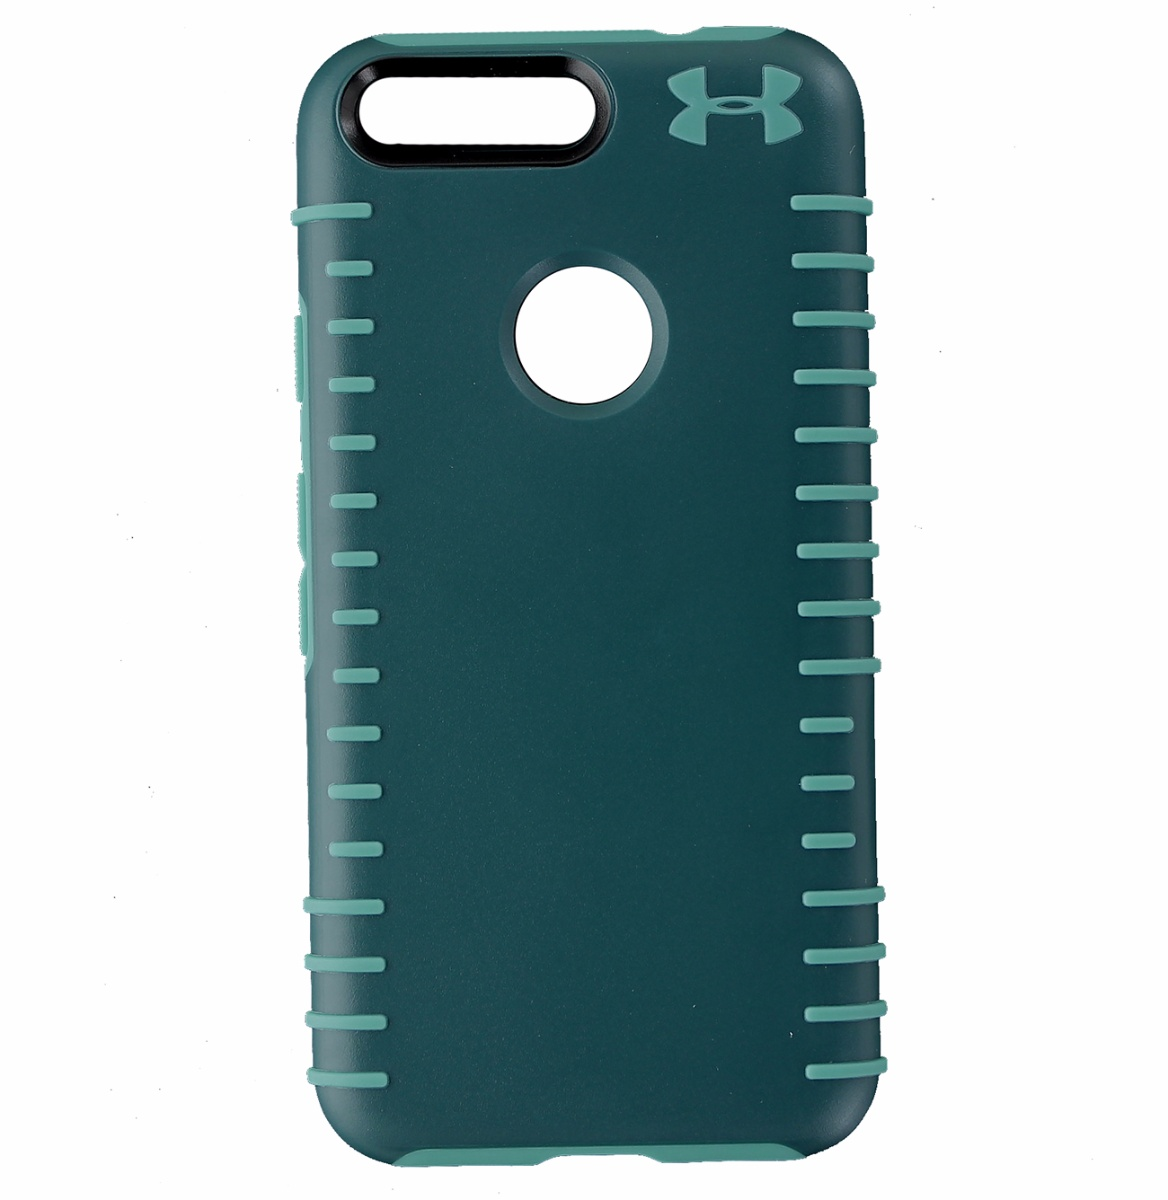 Under Armour Grip Series Hybrid Case Cover for Google Pixel - Tourmaline Teal